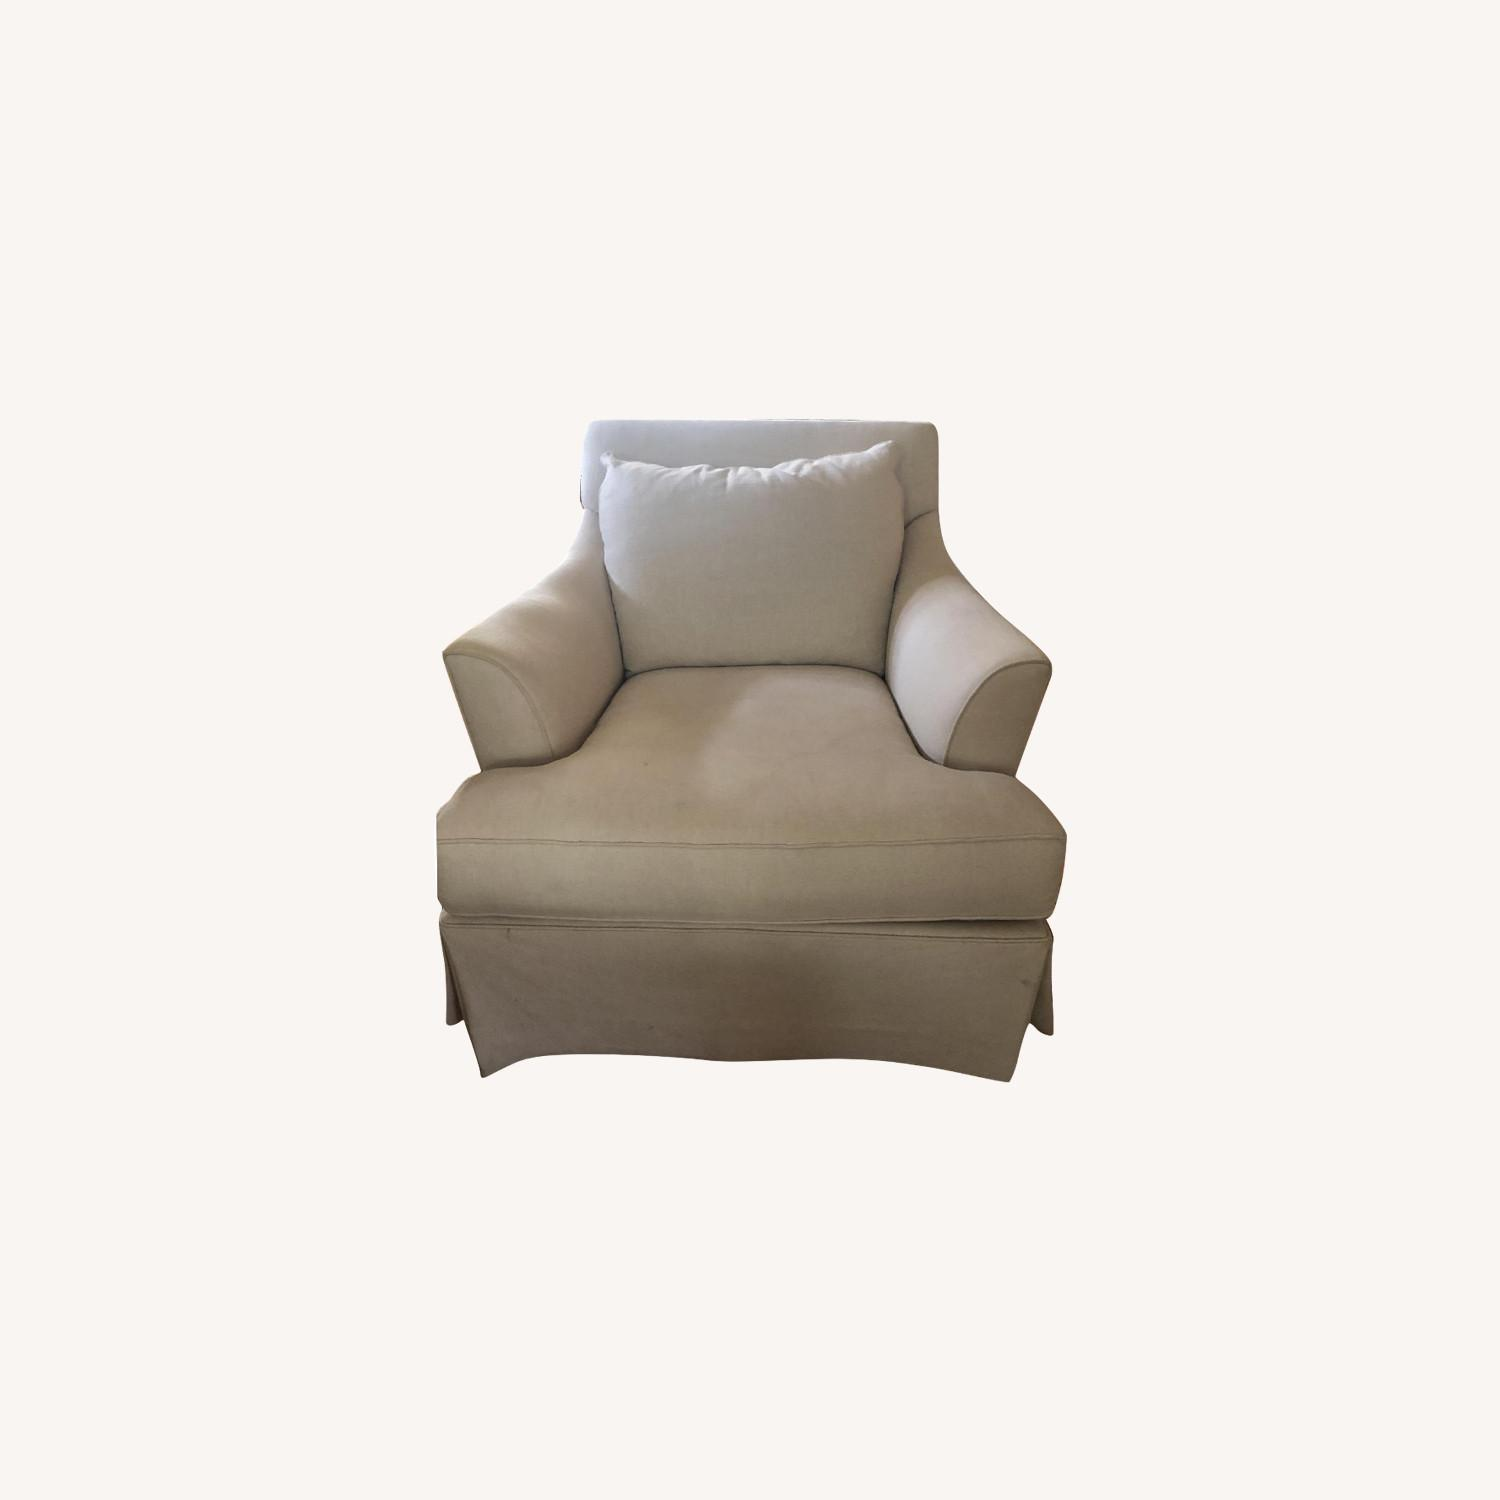 Macy's Natural Accent Chairs - image-0